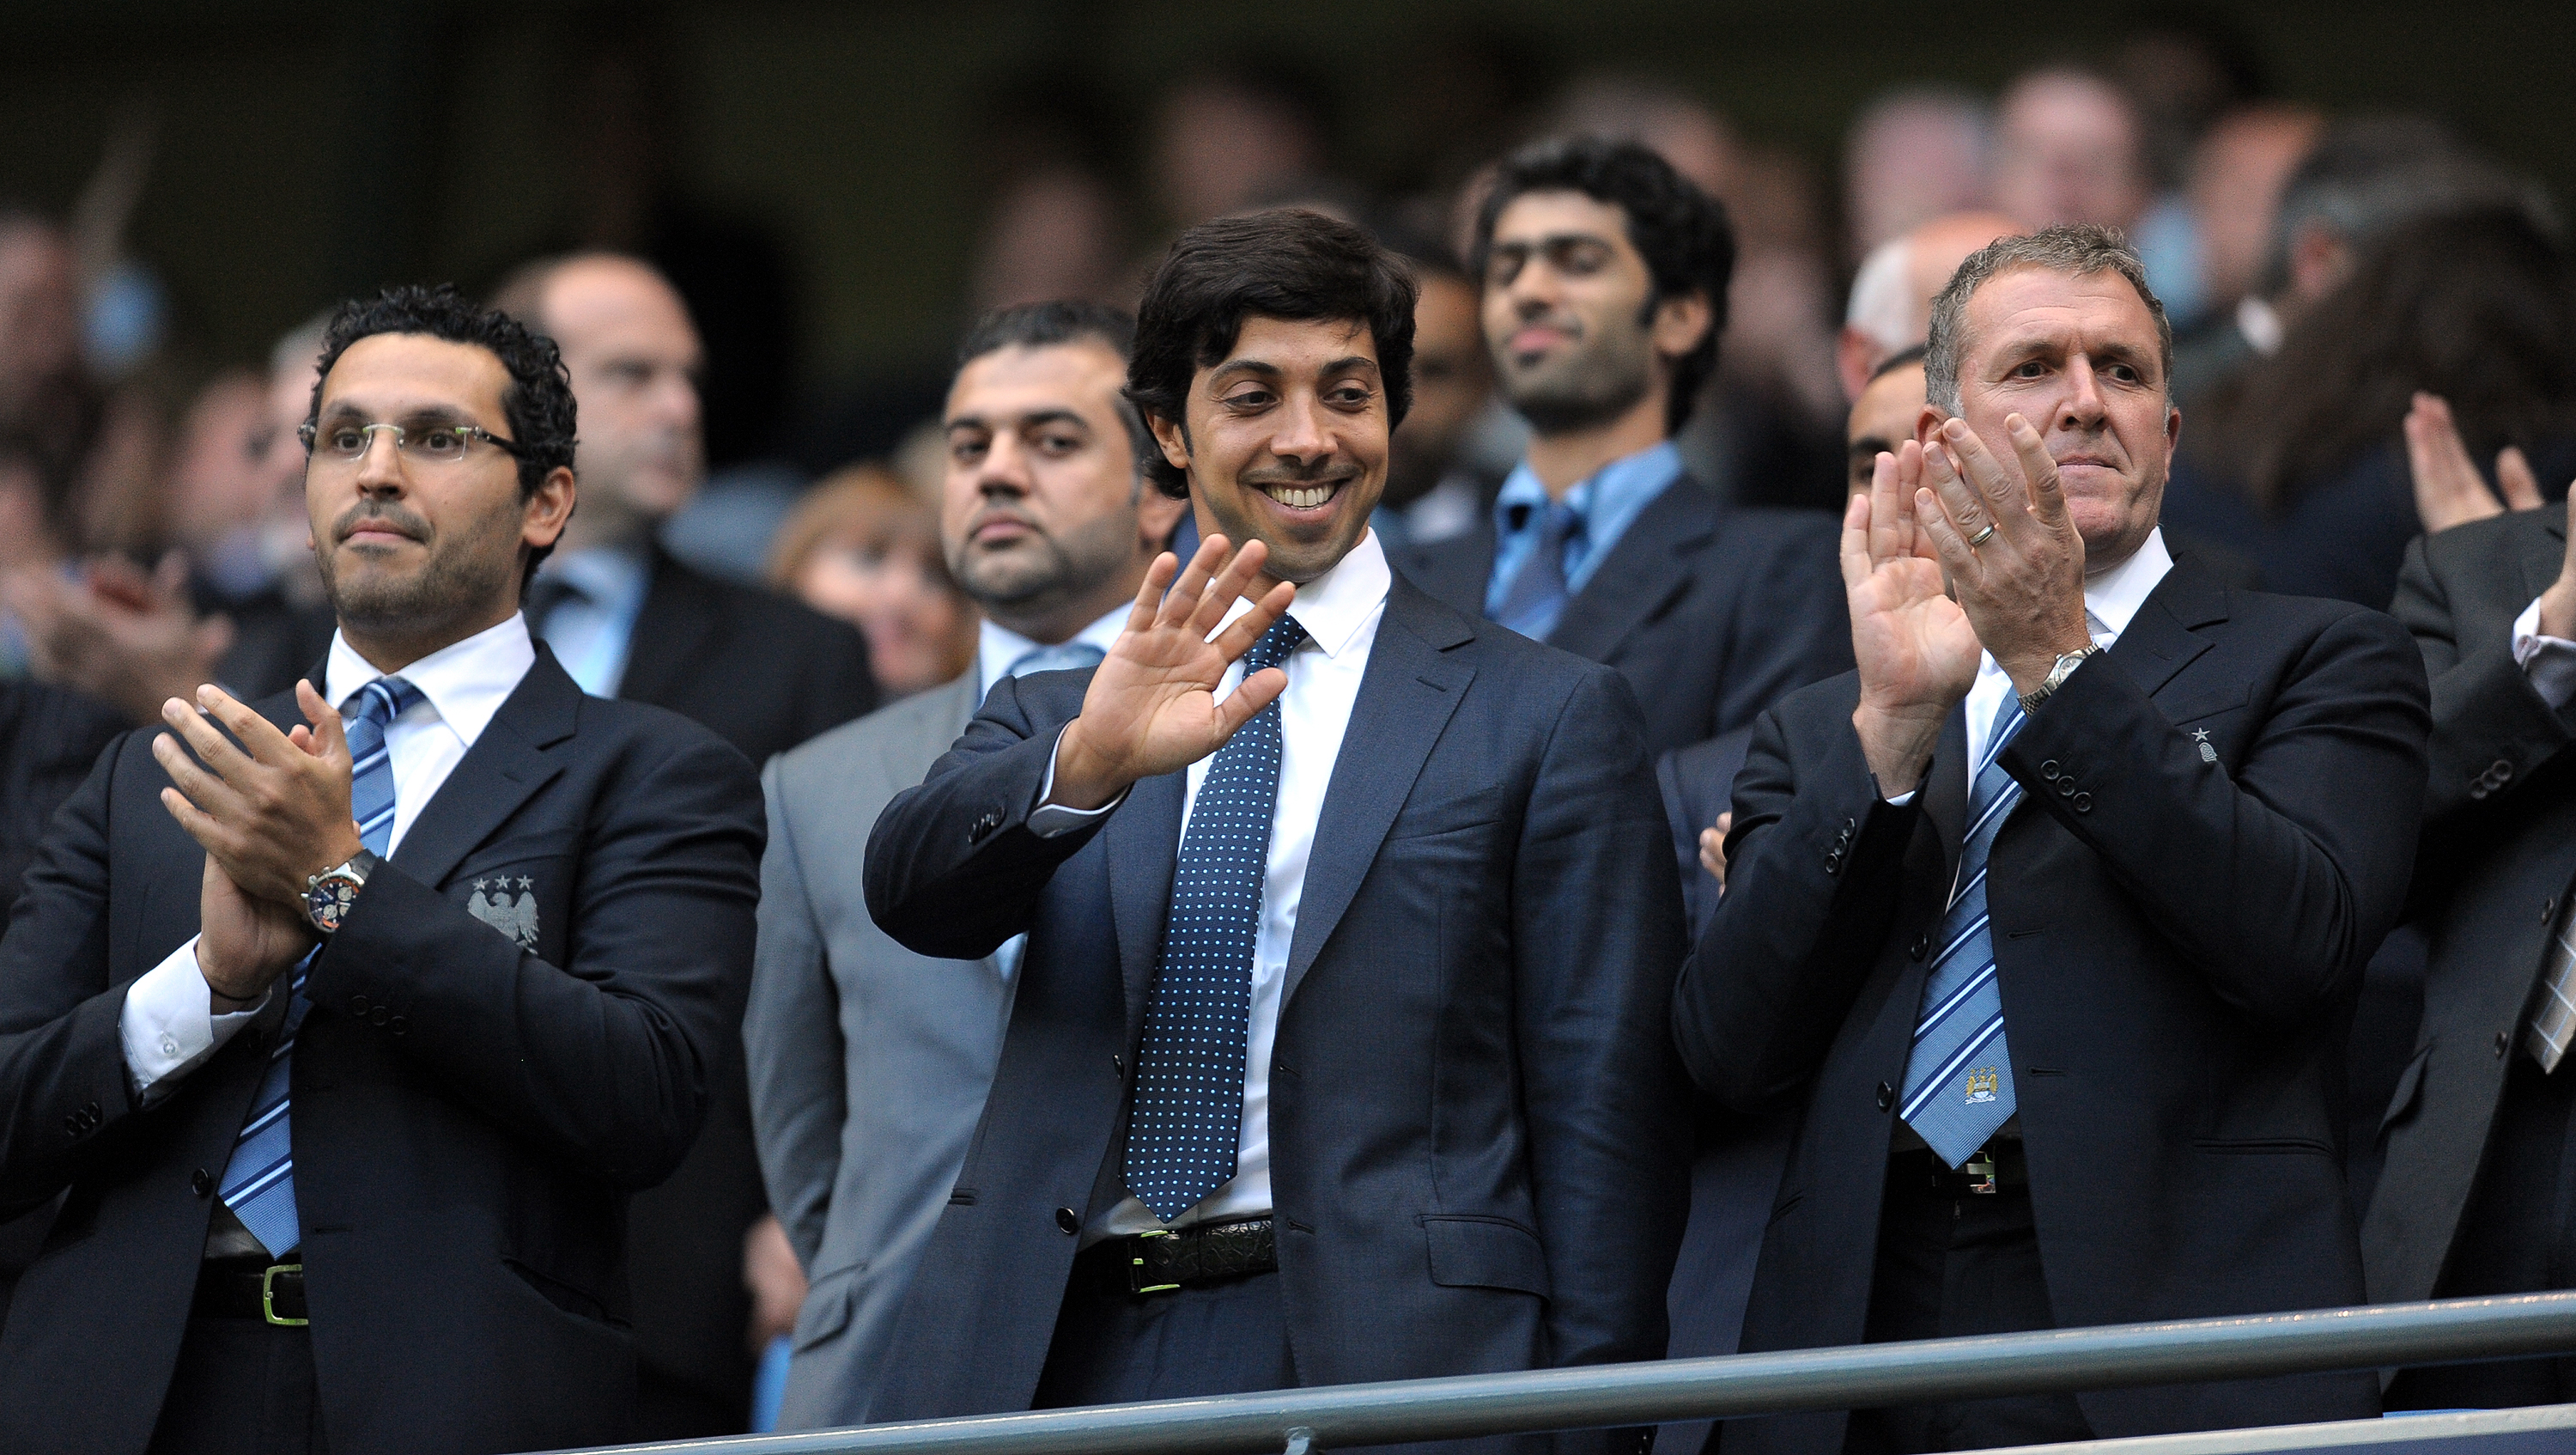 Sheikh Mansour's takeover in 2008 changed the fortunes of Manchester City (Photo by Andrew Yates/AFP via Getty Images)